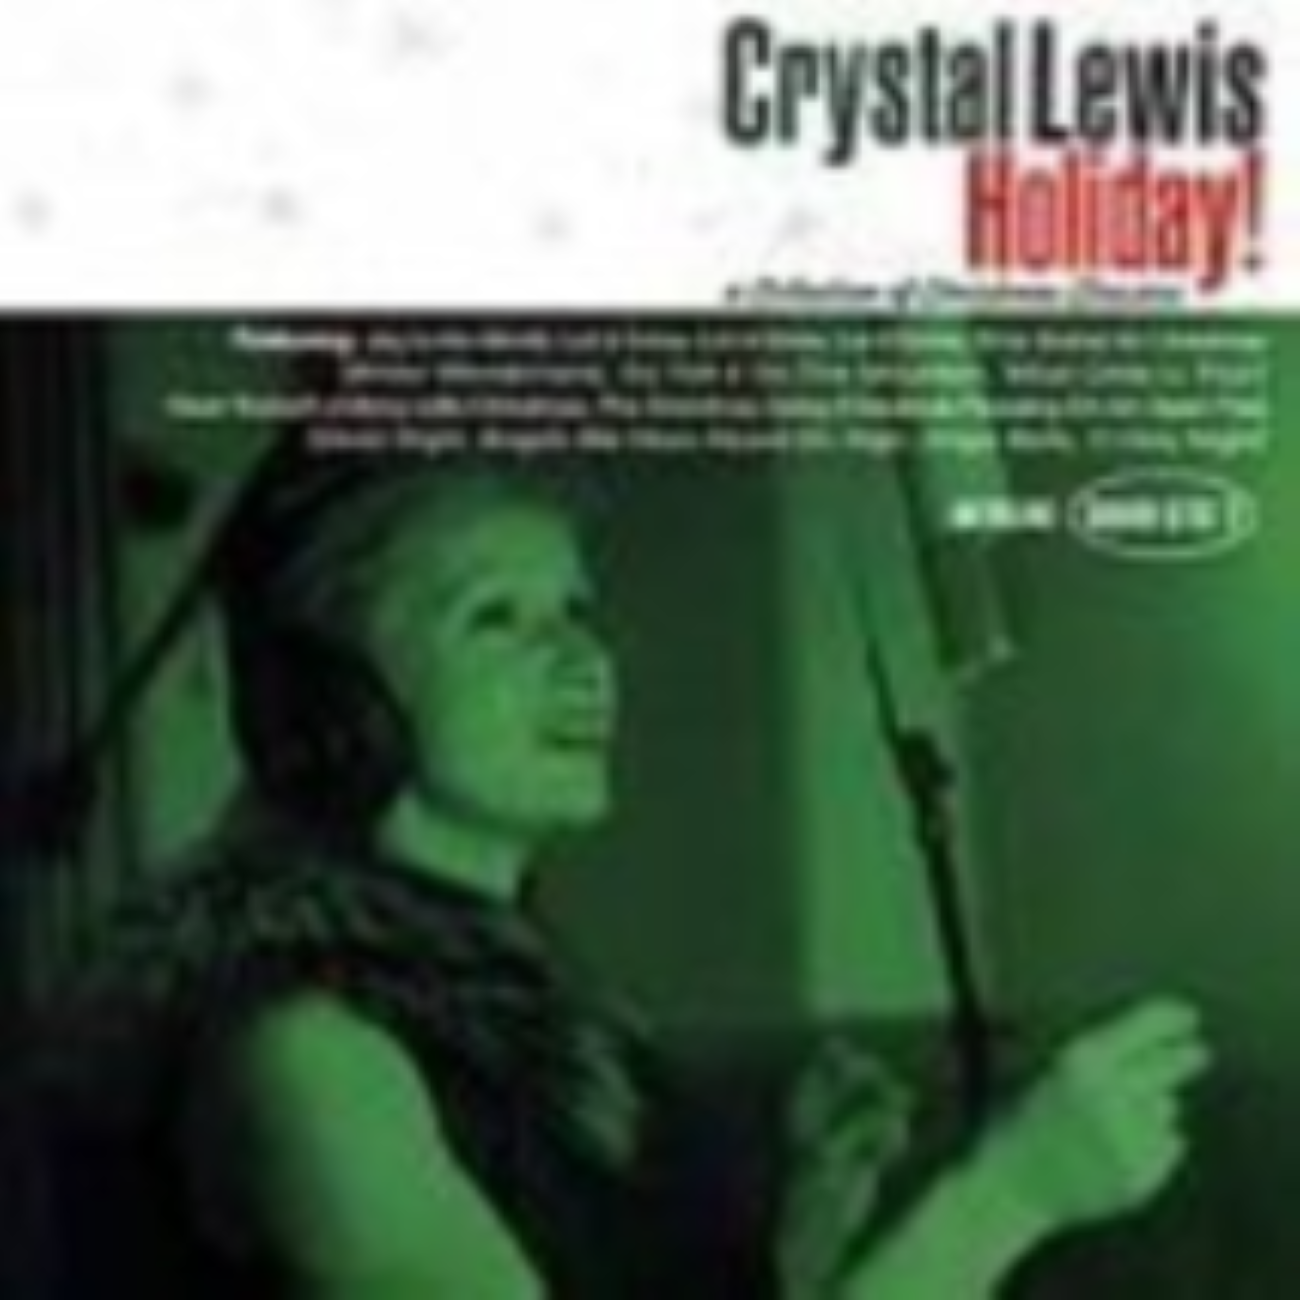 Holiday: A Collection of Christmas Classics by Lewis,Crystal Cd